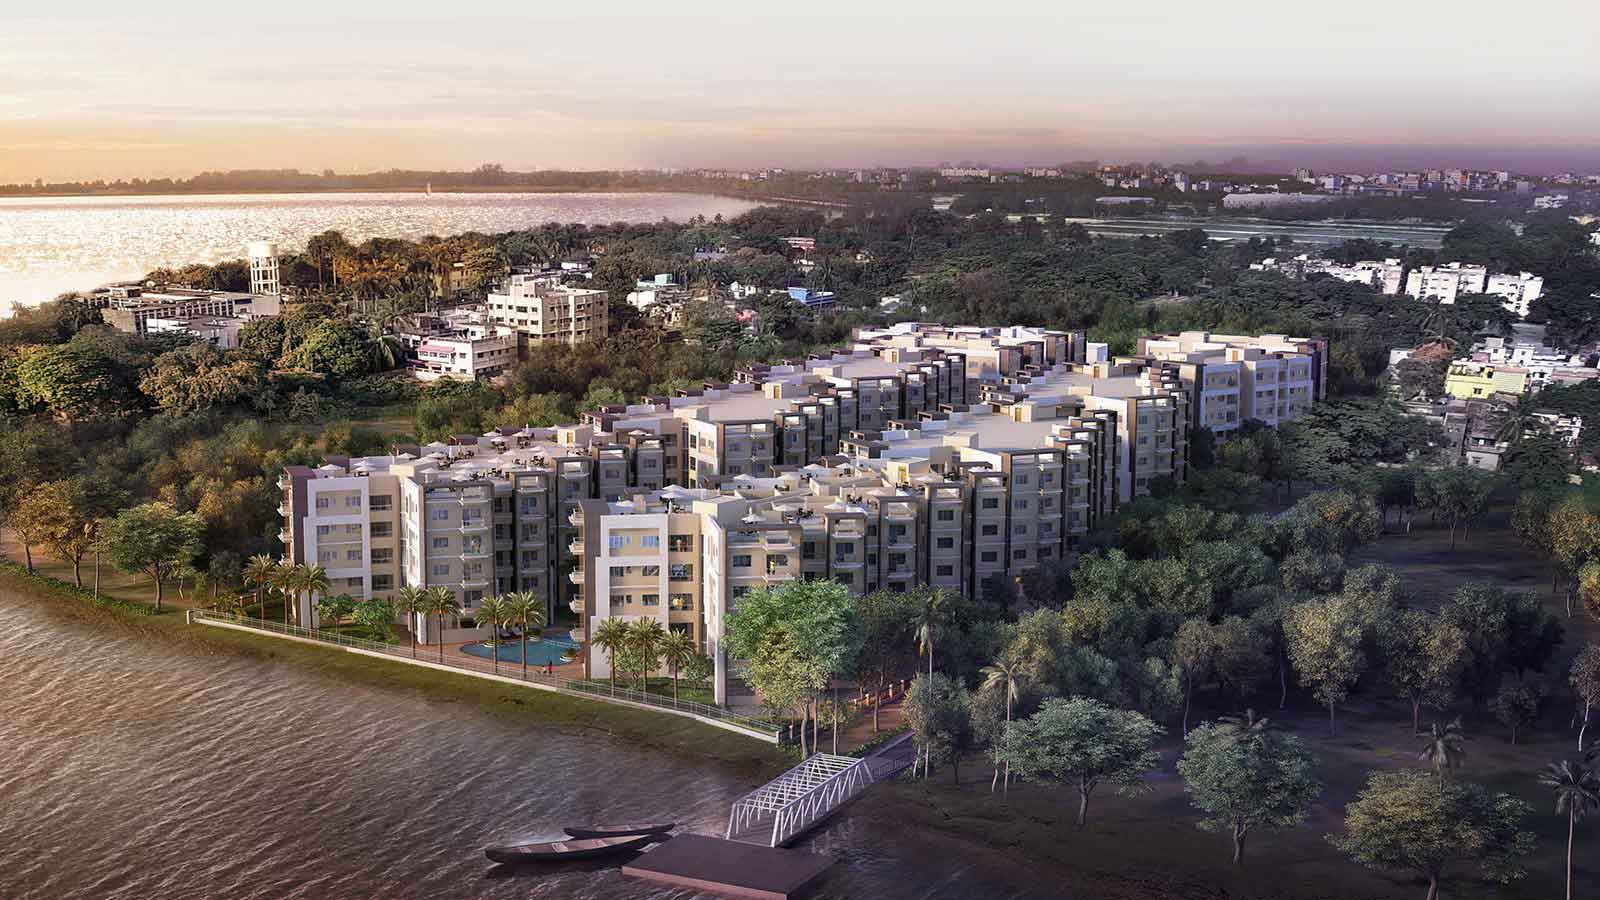 Rameswara Riverview Apartments by Ganges